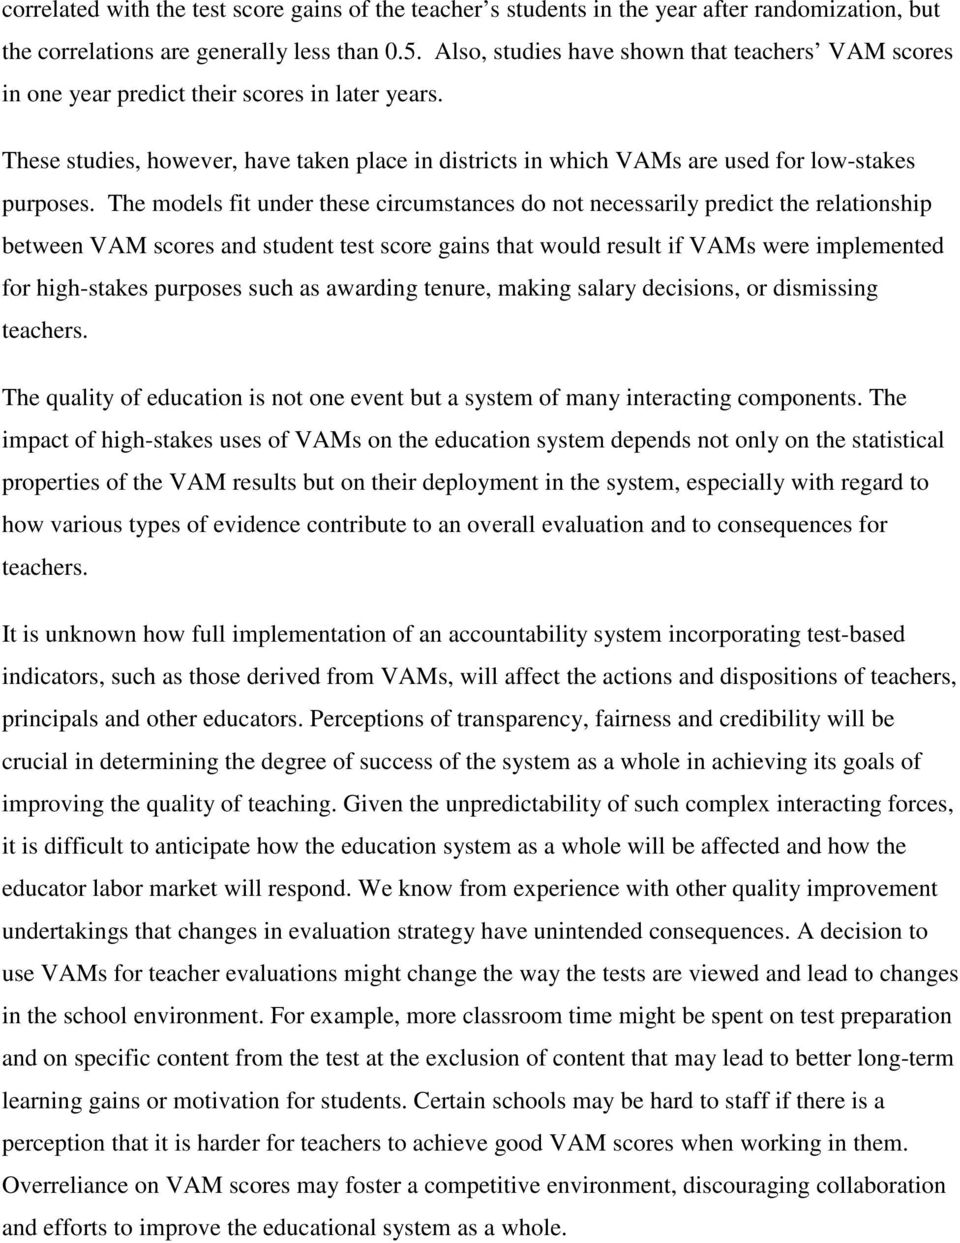 The models fit under these circumstances do not necessarily predict the relationship between VAM scores and student test score gains that would result if VAMs were implemented for high-stakes